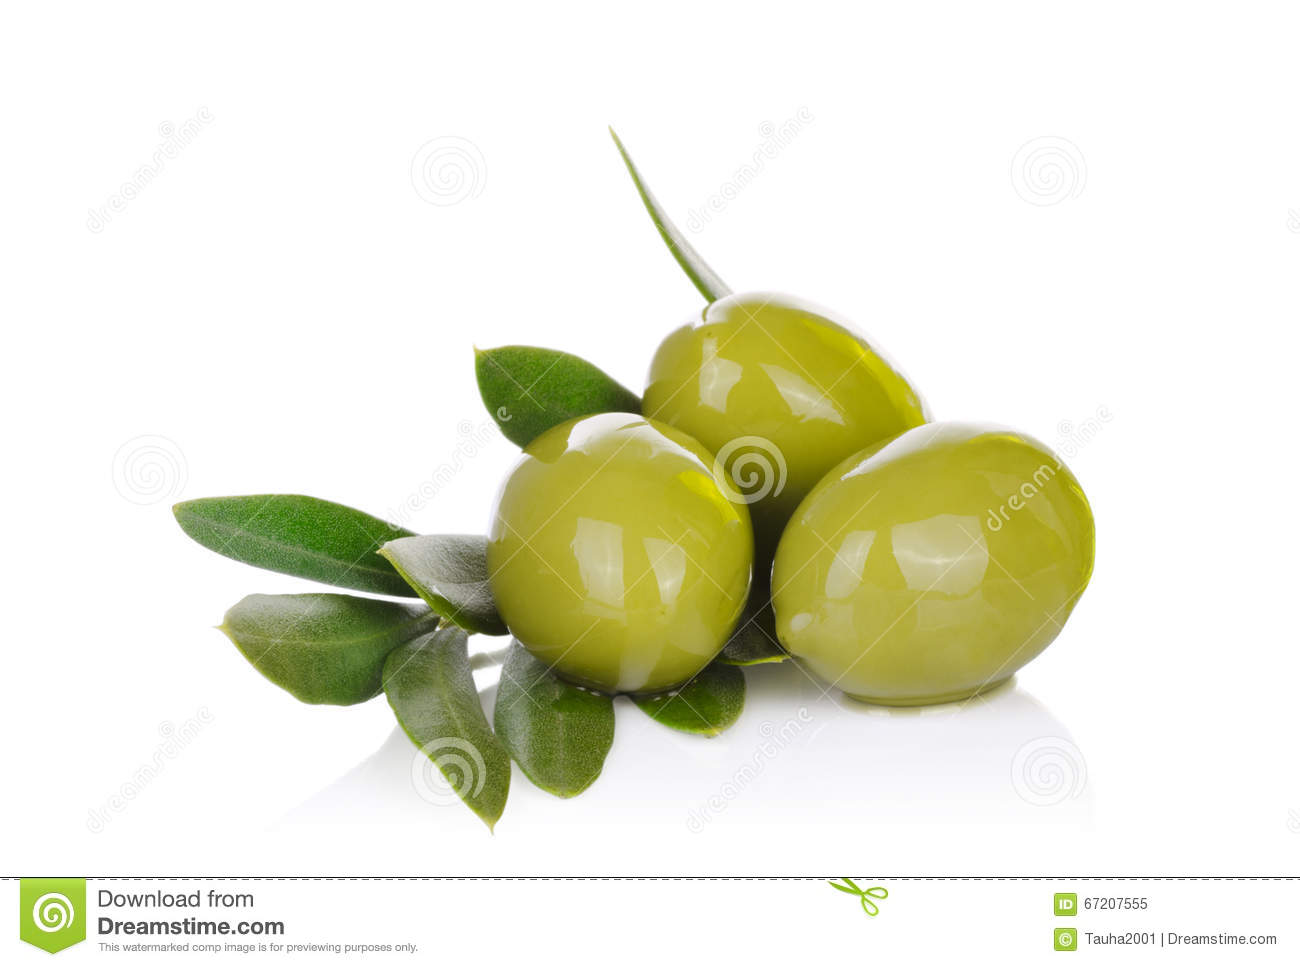 Pickled green olives and olive tree branch on a white